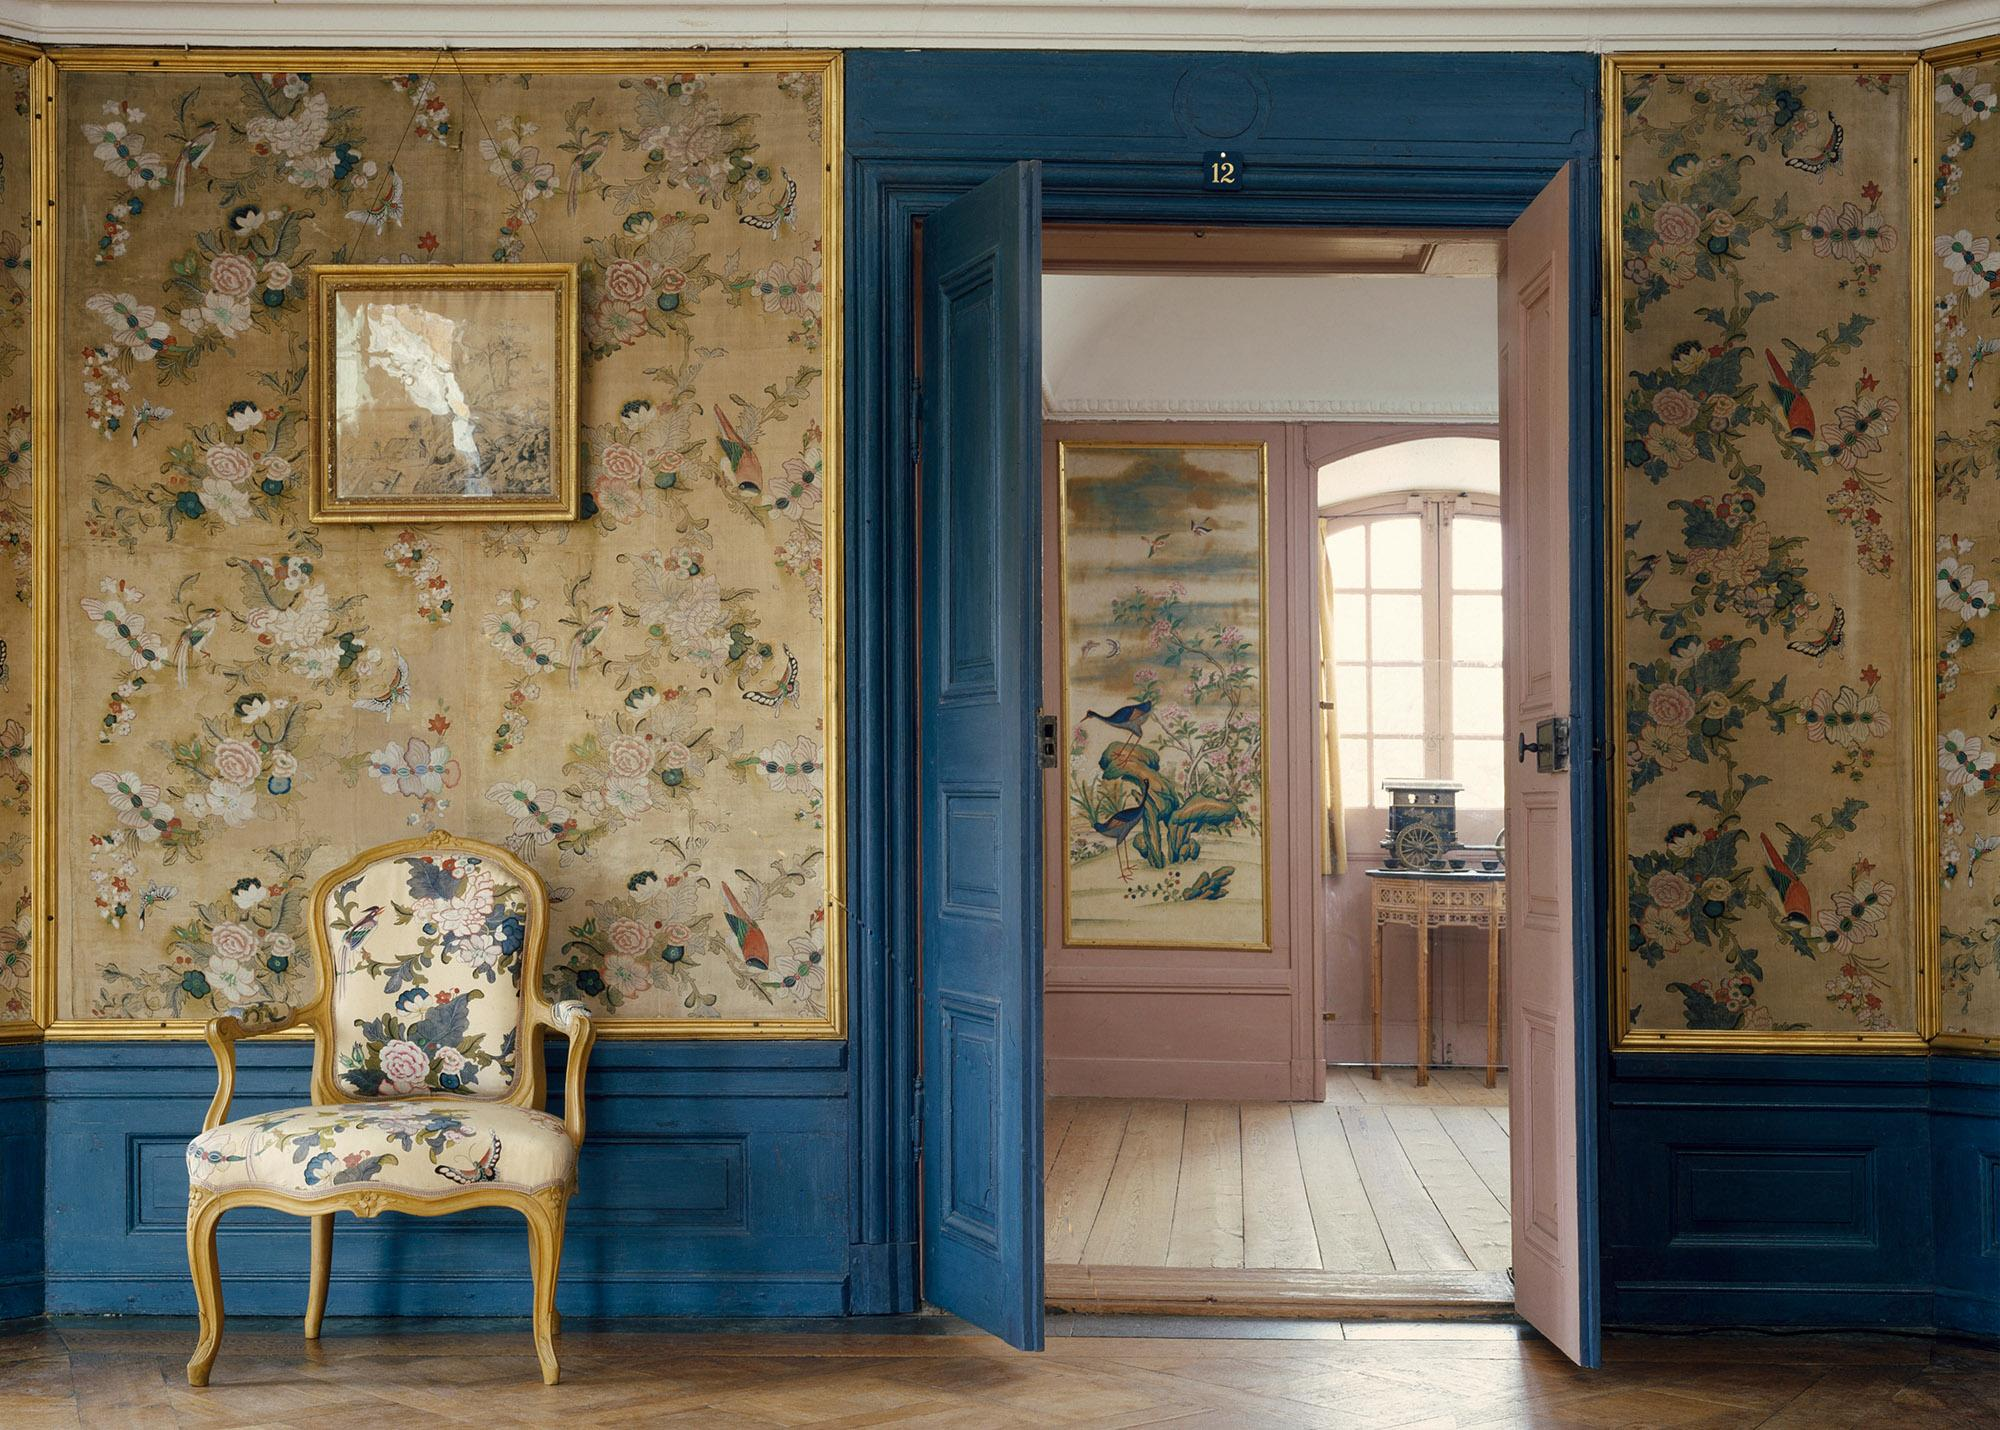 On the second floor, you will find the Library and beautiful wall-hangings painted by hand in China – © The Royal Court